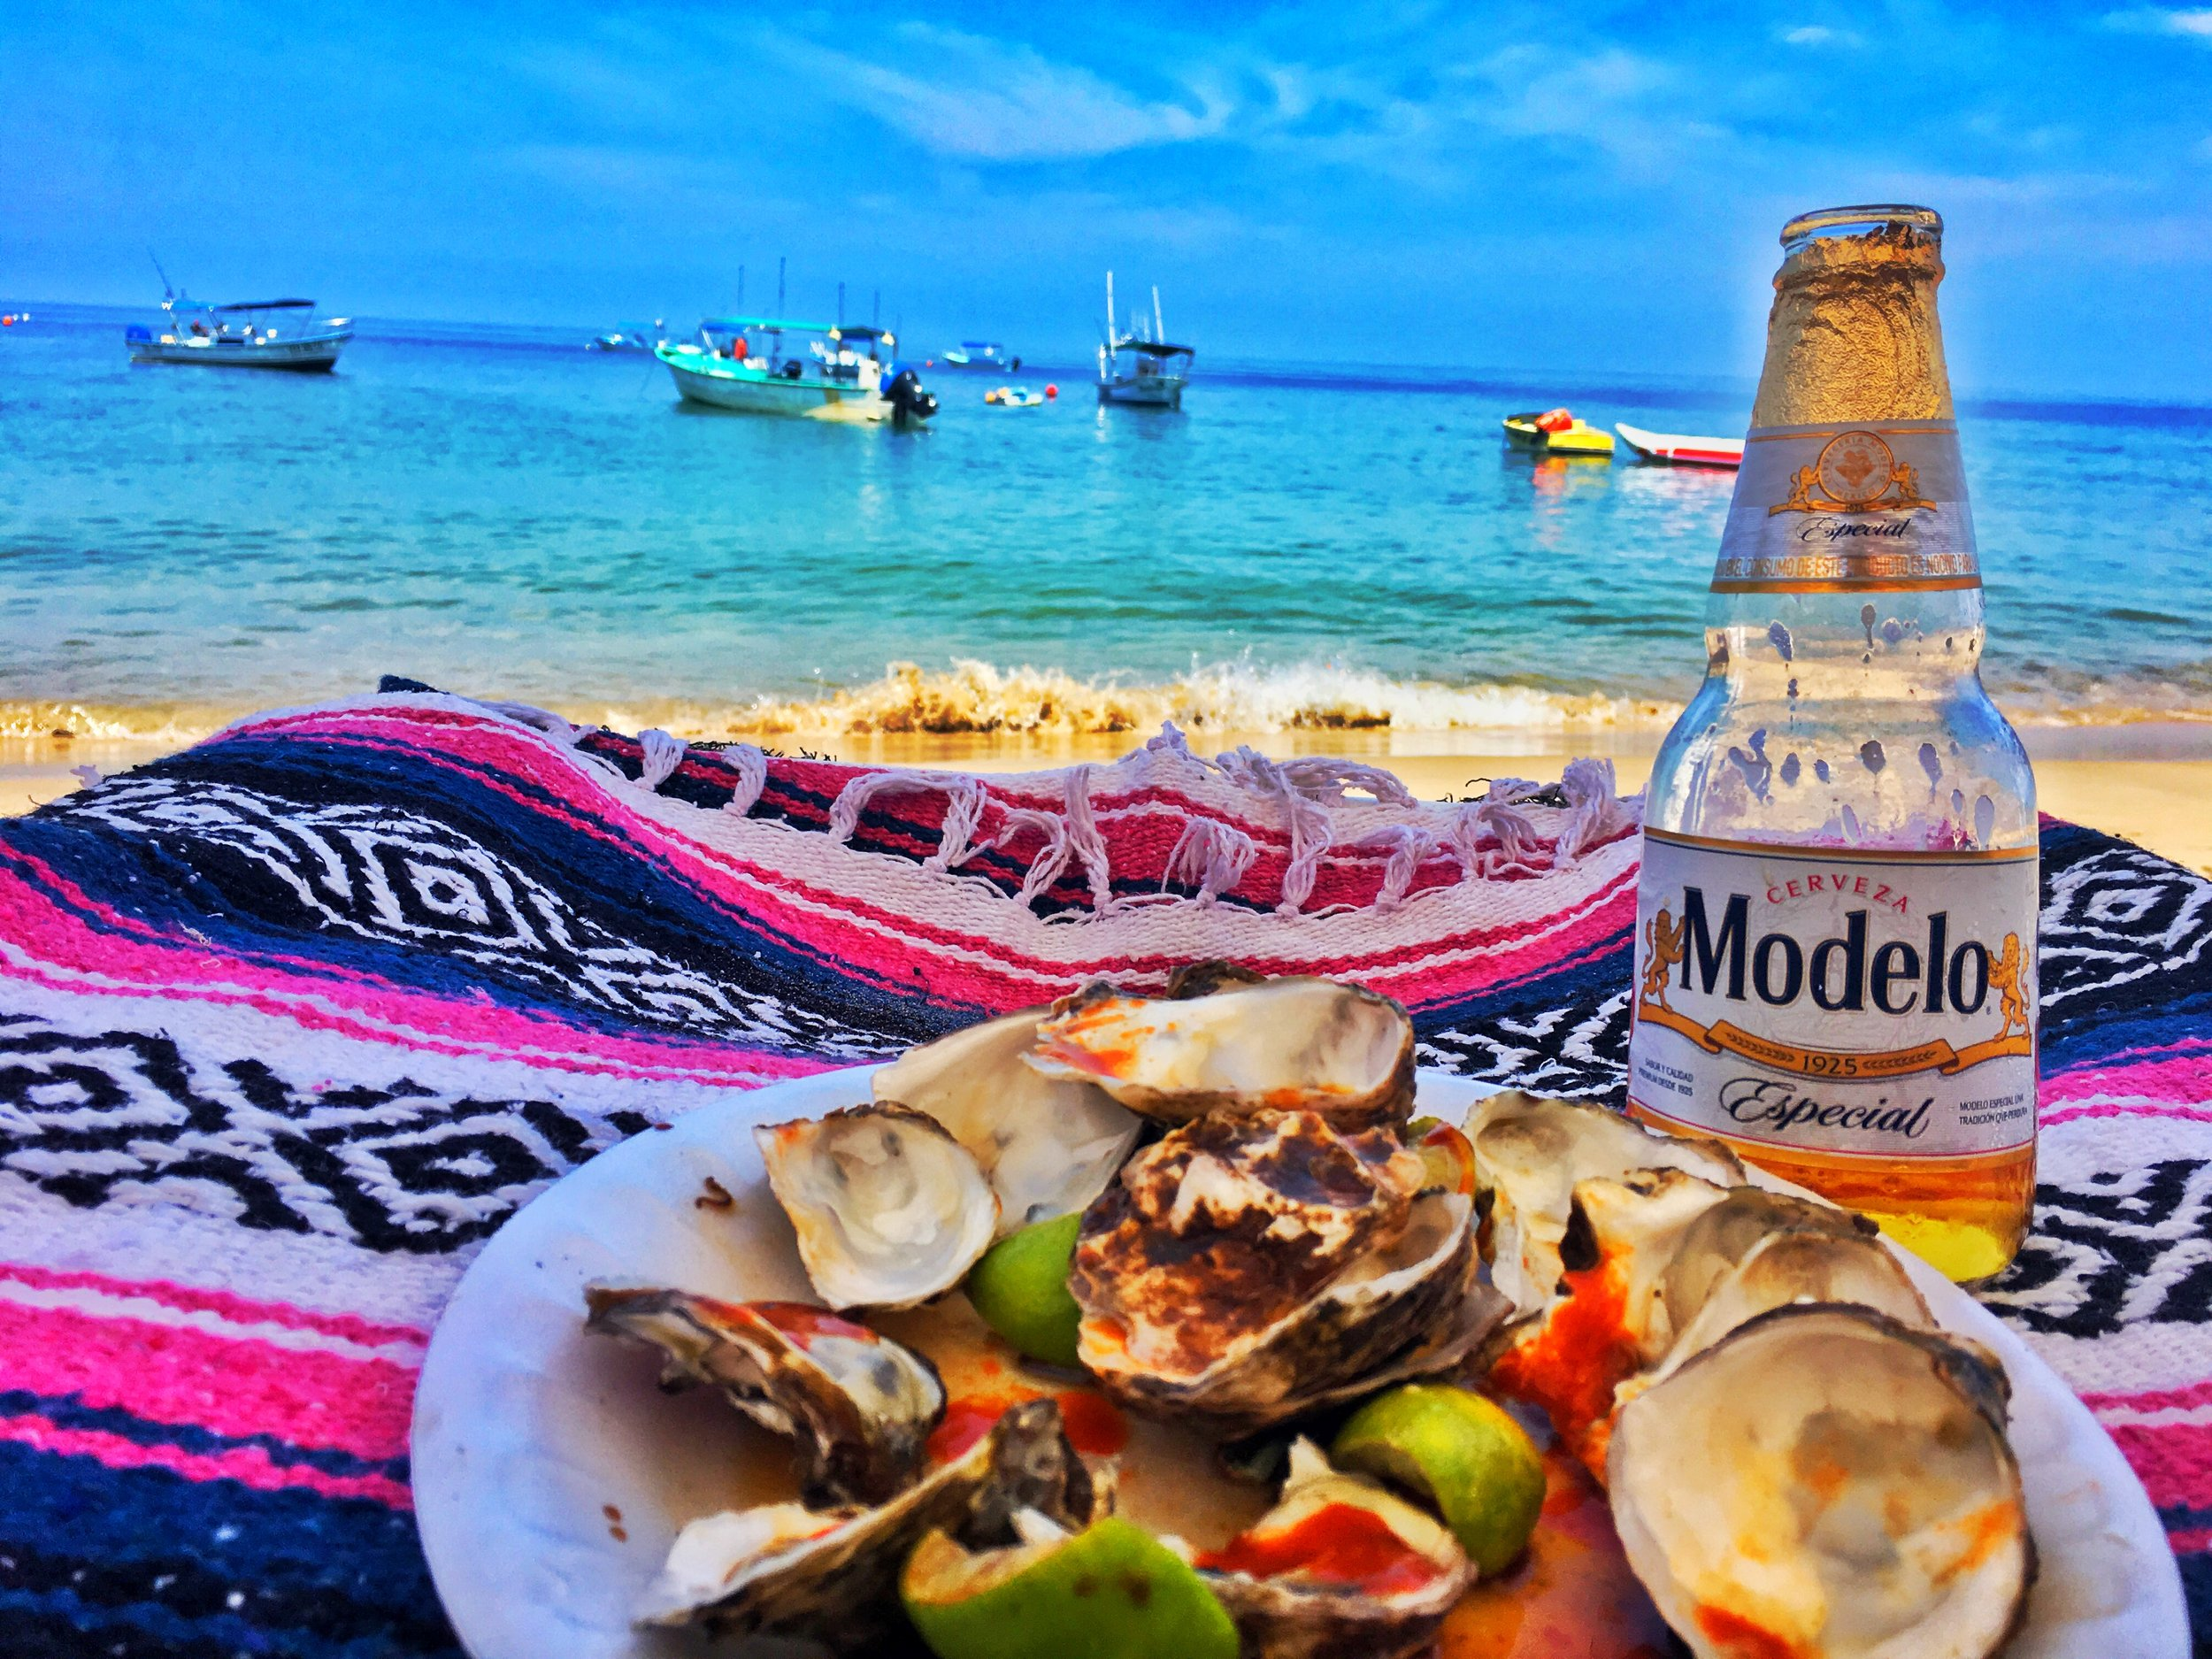 Oyesters on the rocks & ice cold beer delivered to your ocean from blanket. Life doesn't get better.